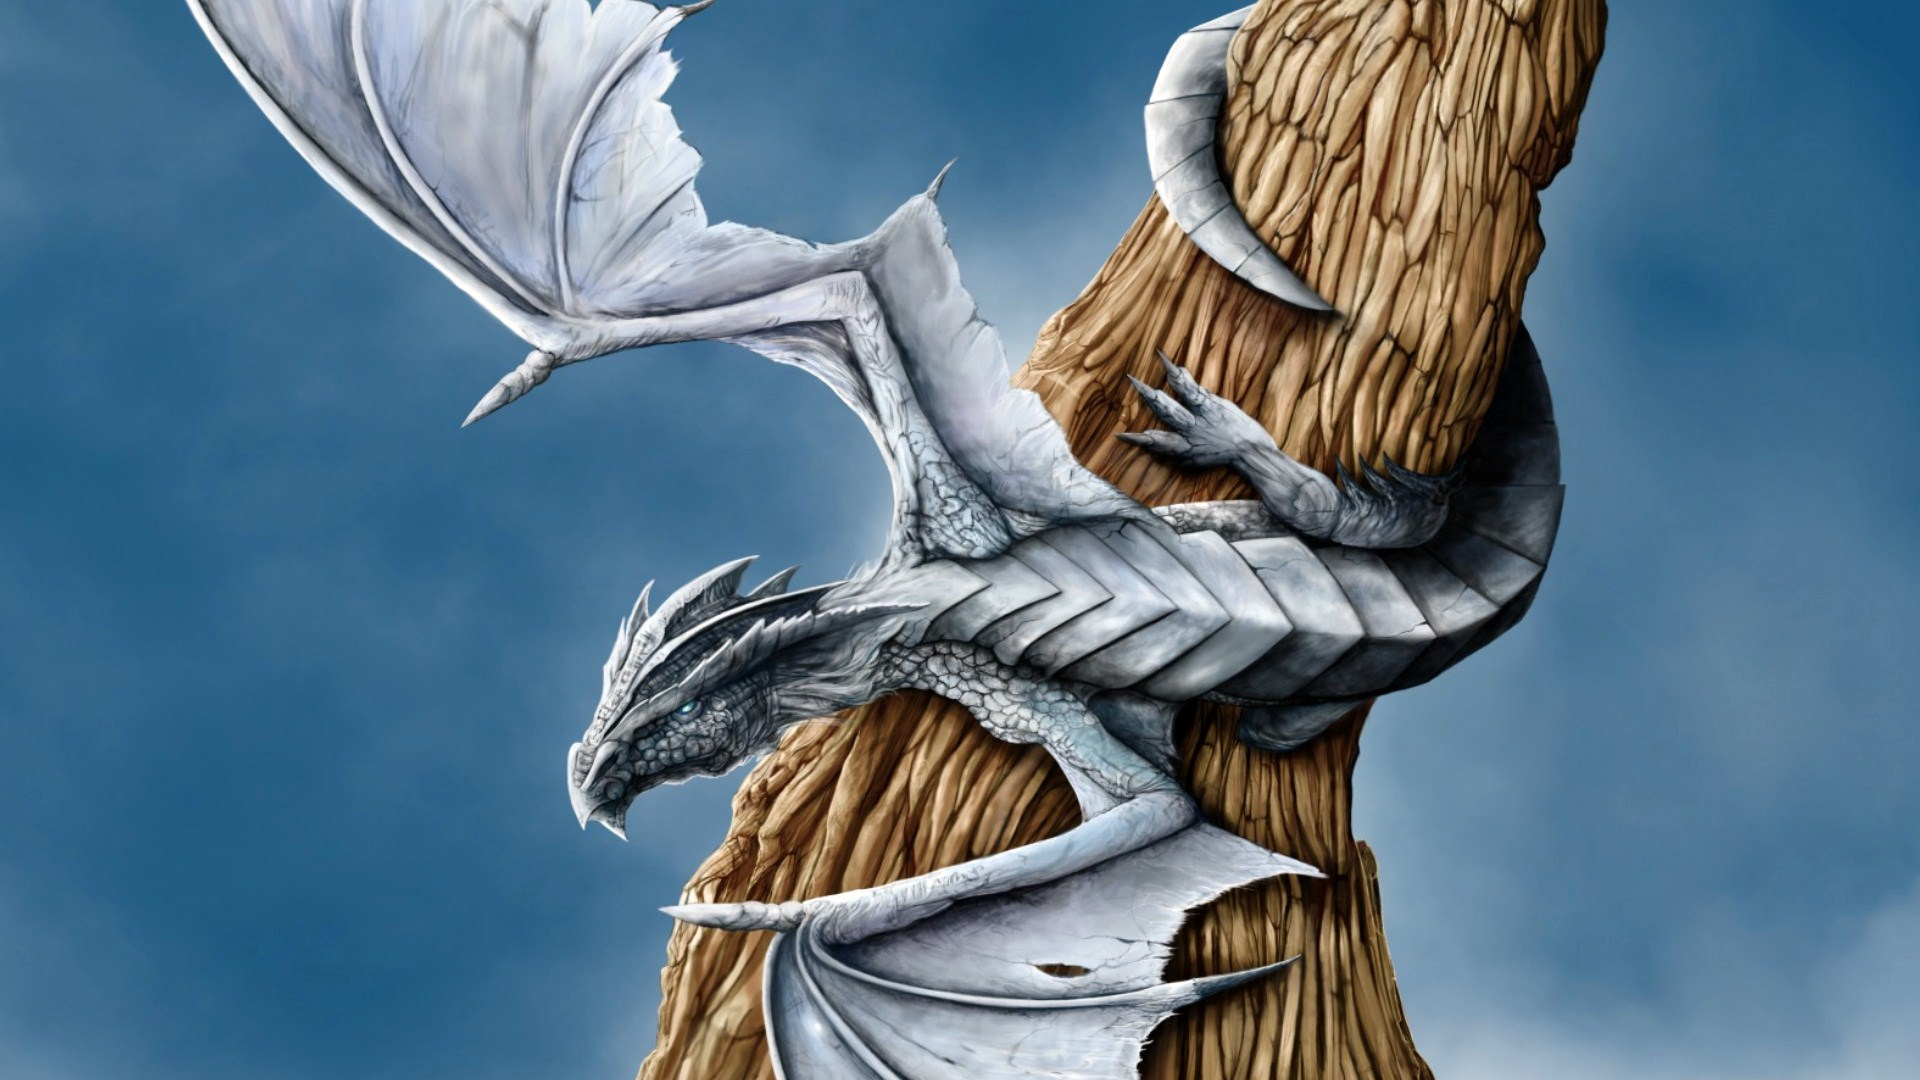 fantasy-white-dragon-dragon-wings-1920x1080